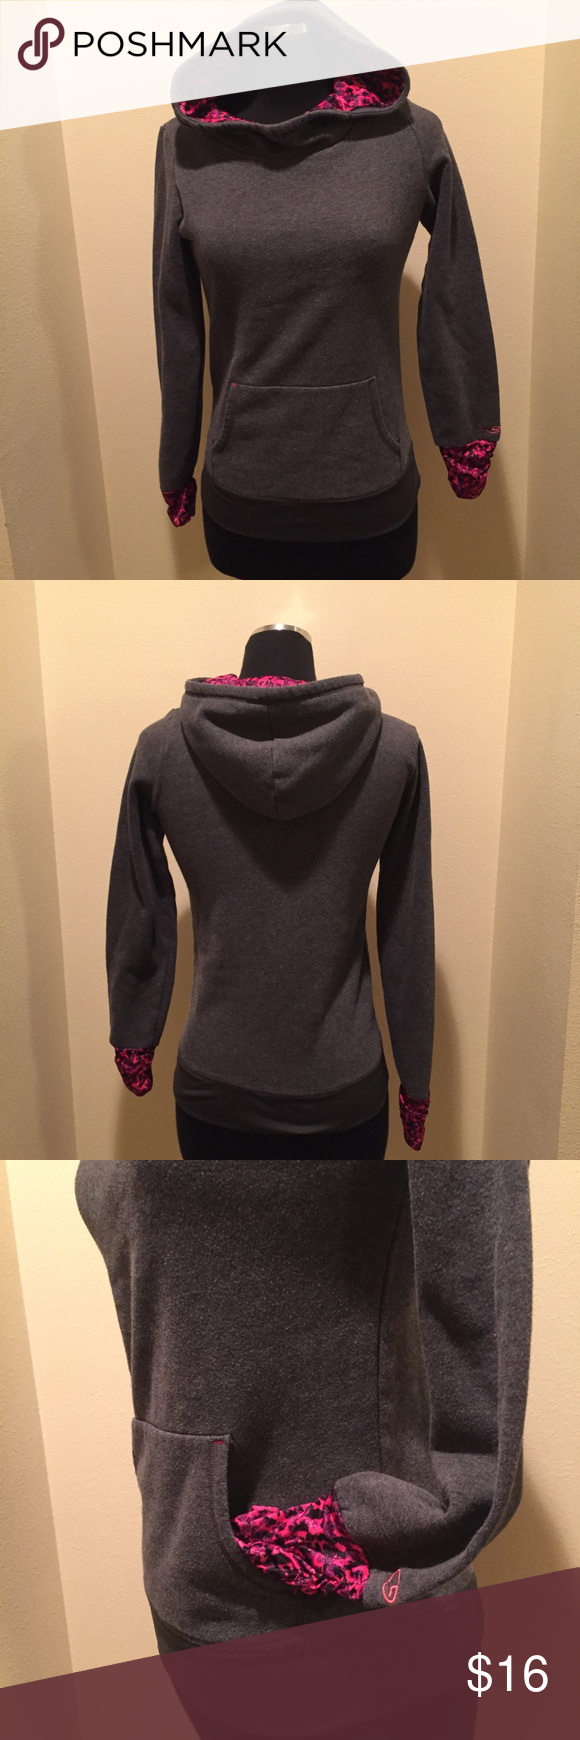 Champion hooded sweatshirt Gray hooded sweatshirt from Champion .  Size XL(14-16) youth.  Pre owned, good condition, pet/smoke free home Champion Tops Sweatshirts & Hoodies